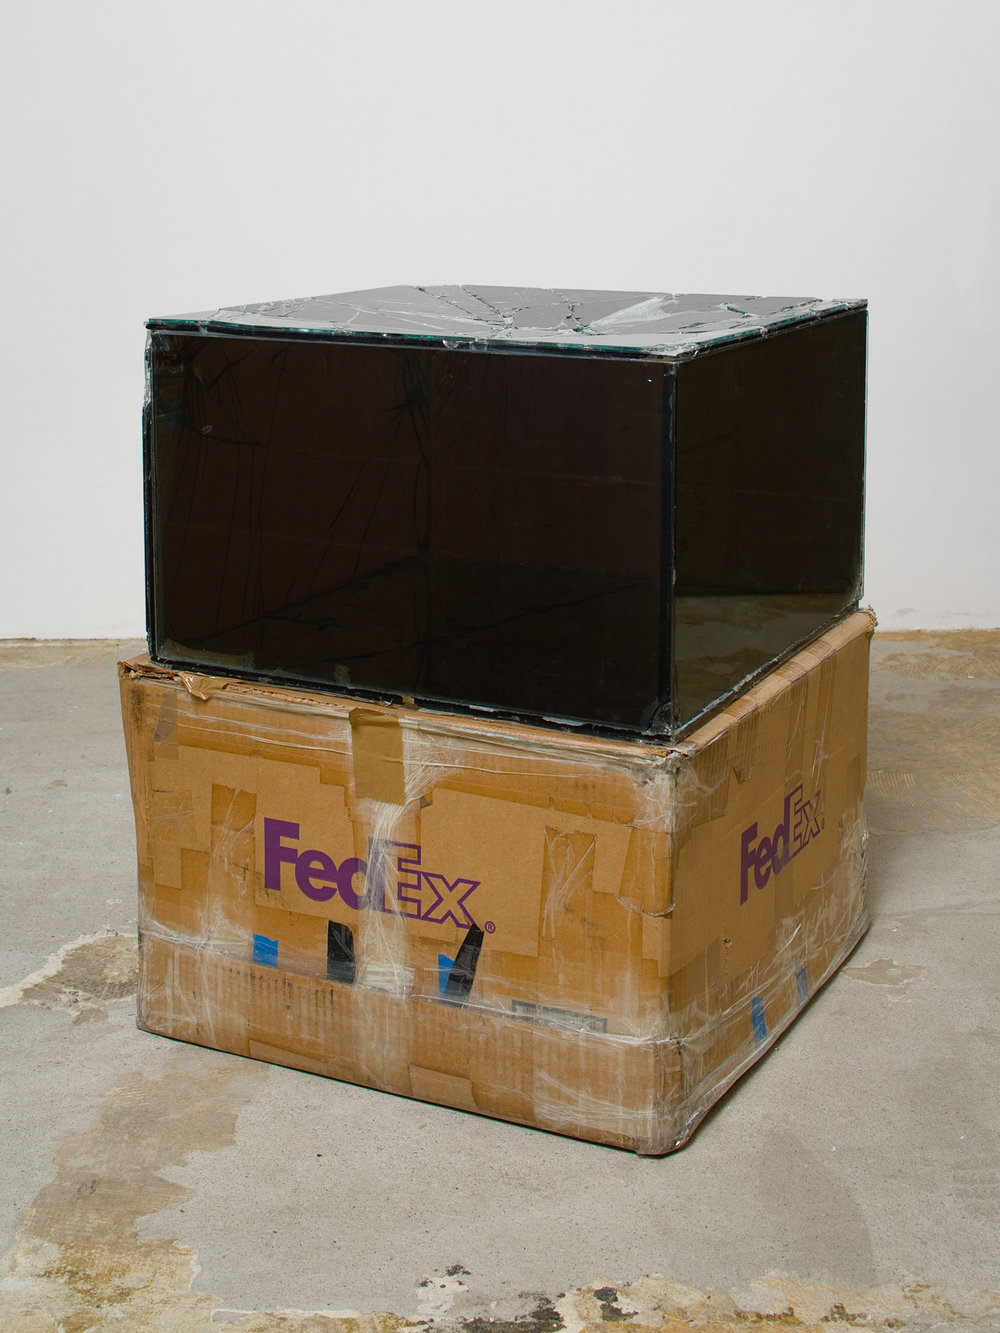 Fedex® Medium Kraft Boxes, Priority Overnight, Los Angeles–New York trk#864049582968 & trk#867525901423, December 7–10, Priority Overnight, New York–Los Angeles trk#863133194810 & trk#863133194800, December 10–12, 2007, International Priority, Los Angeles–Oostende trk#867279774962 & trk#867279774973, February 9–12, 2009, International Priority, Oostende–Paris trk#803074770903    2007–   Laminated glass, FedEx shipping box, accrued FedEx shipping and tracking labels, silicone, metal, tape  20 x 48 x 20 inches   Science Concrète, 2008